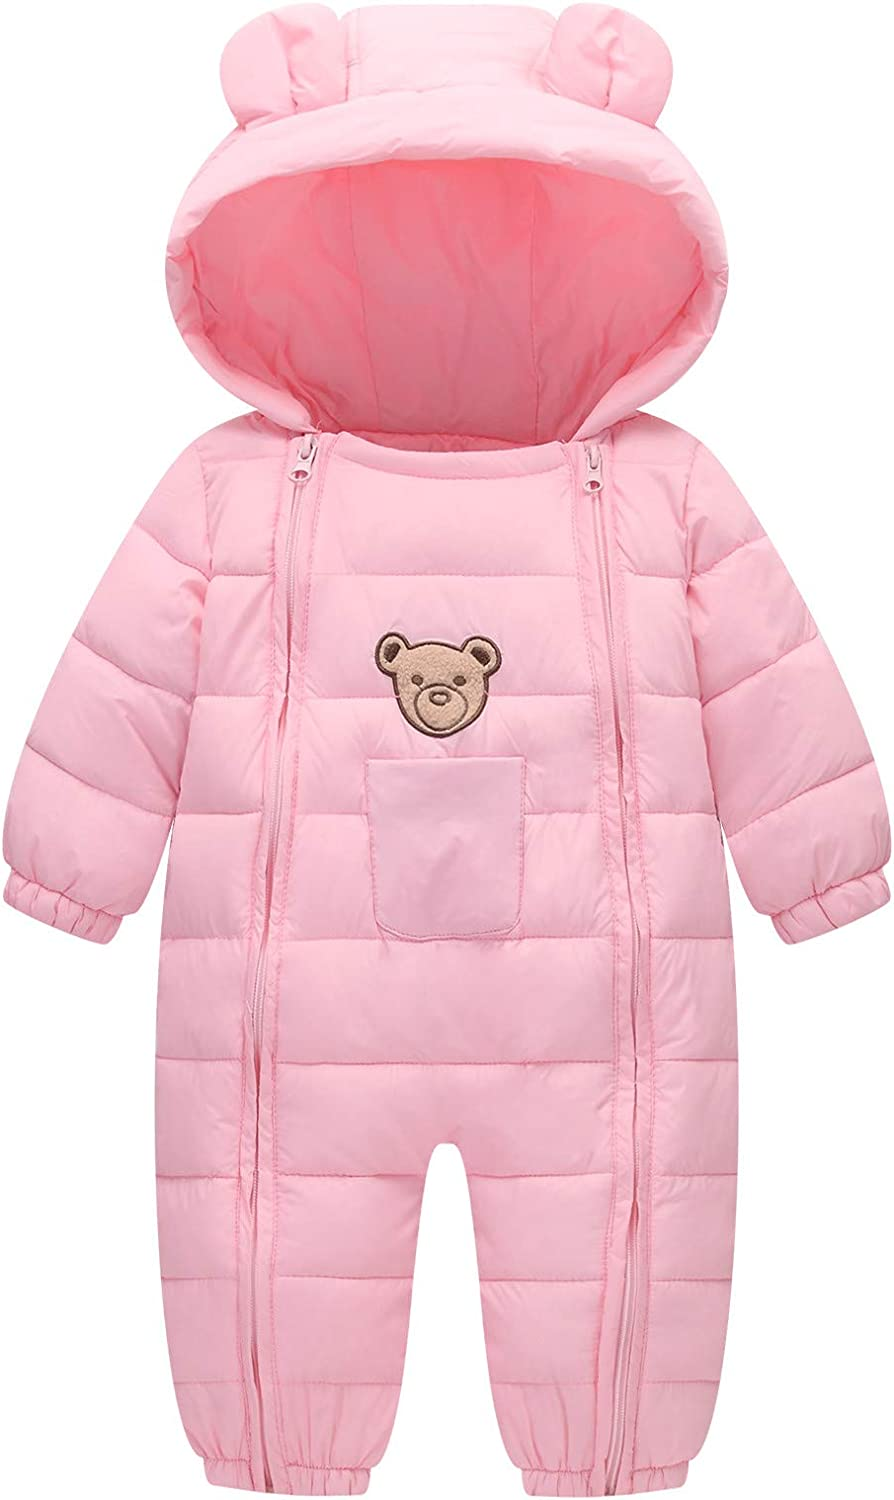 Baby Fashionable Cotton Romper Toddler High quality new Thermal Winter Double Win Zipper Coat